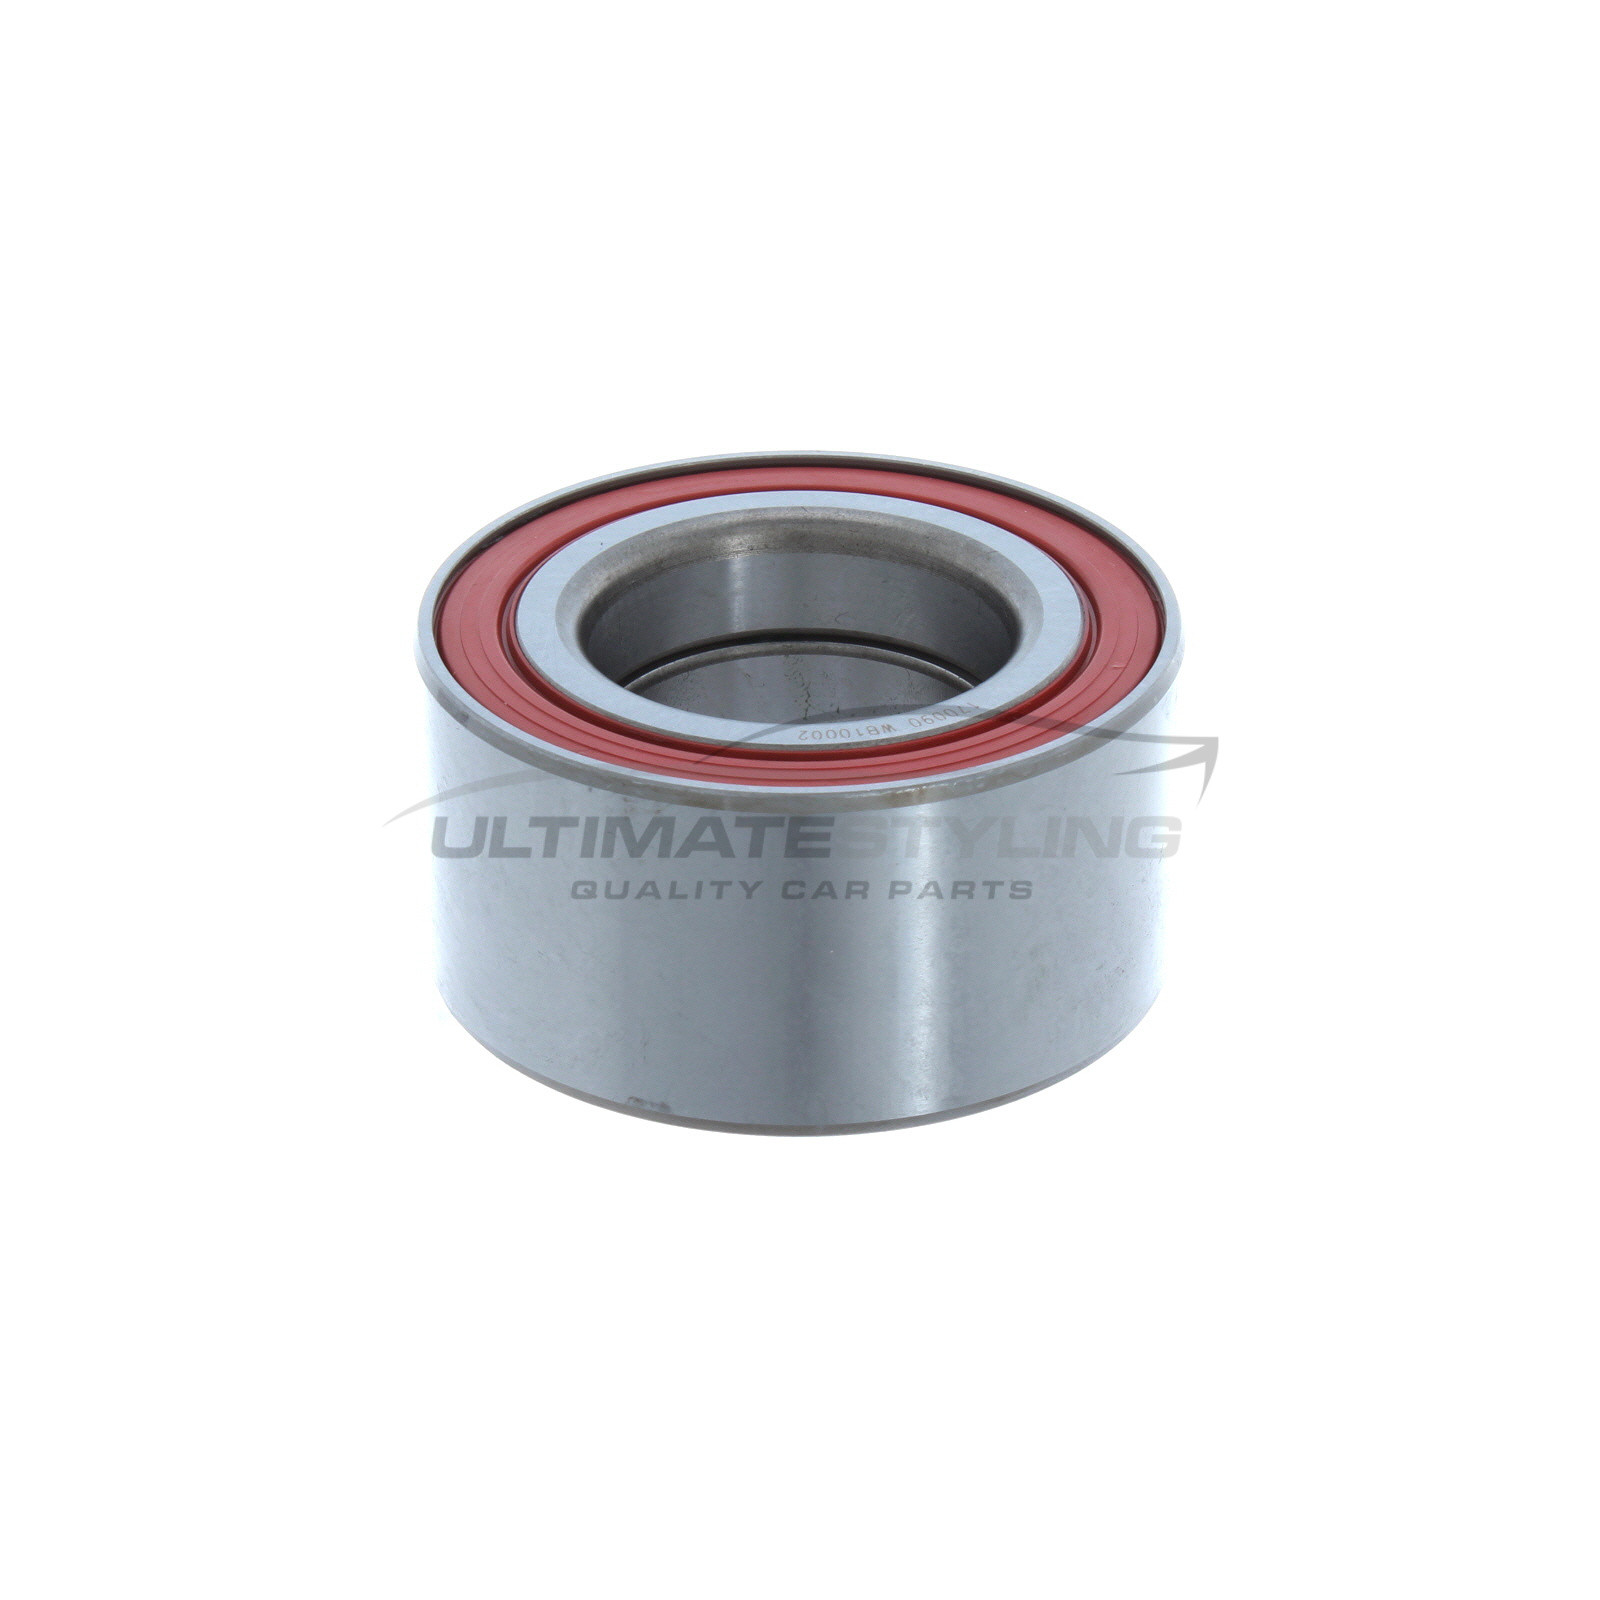 "Front <span style=""color:red;""><strong>OR</strong></span> Rear Wheel Bearing Kit for Audi Quattro"